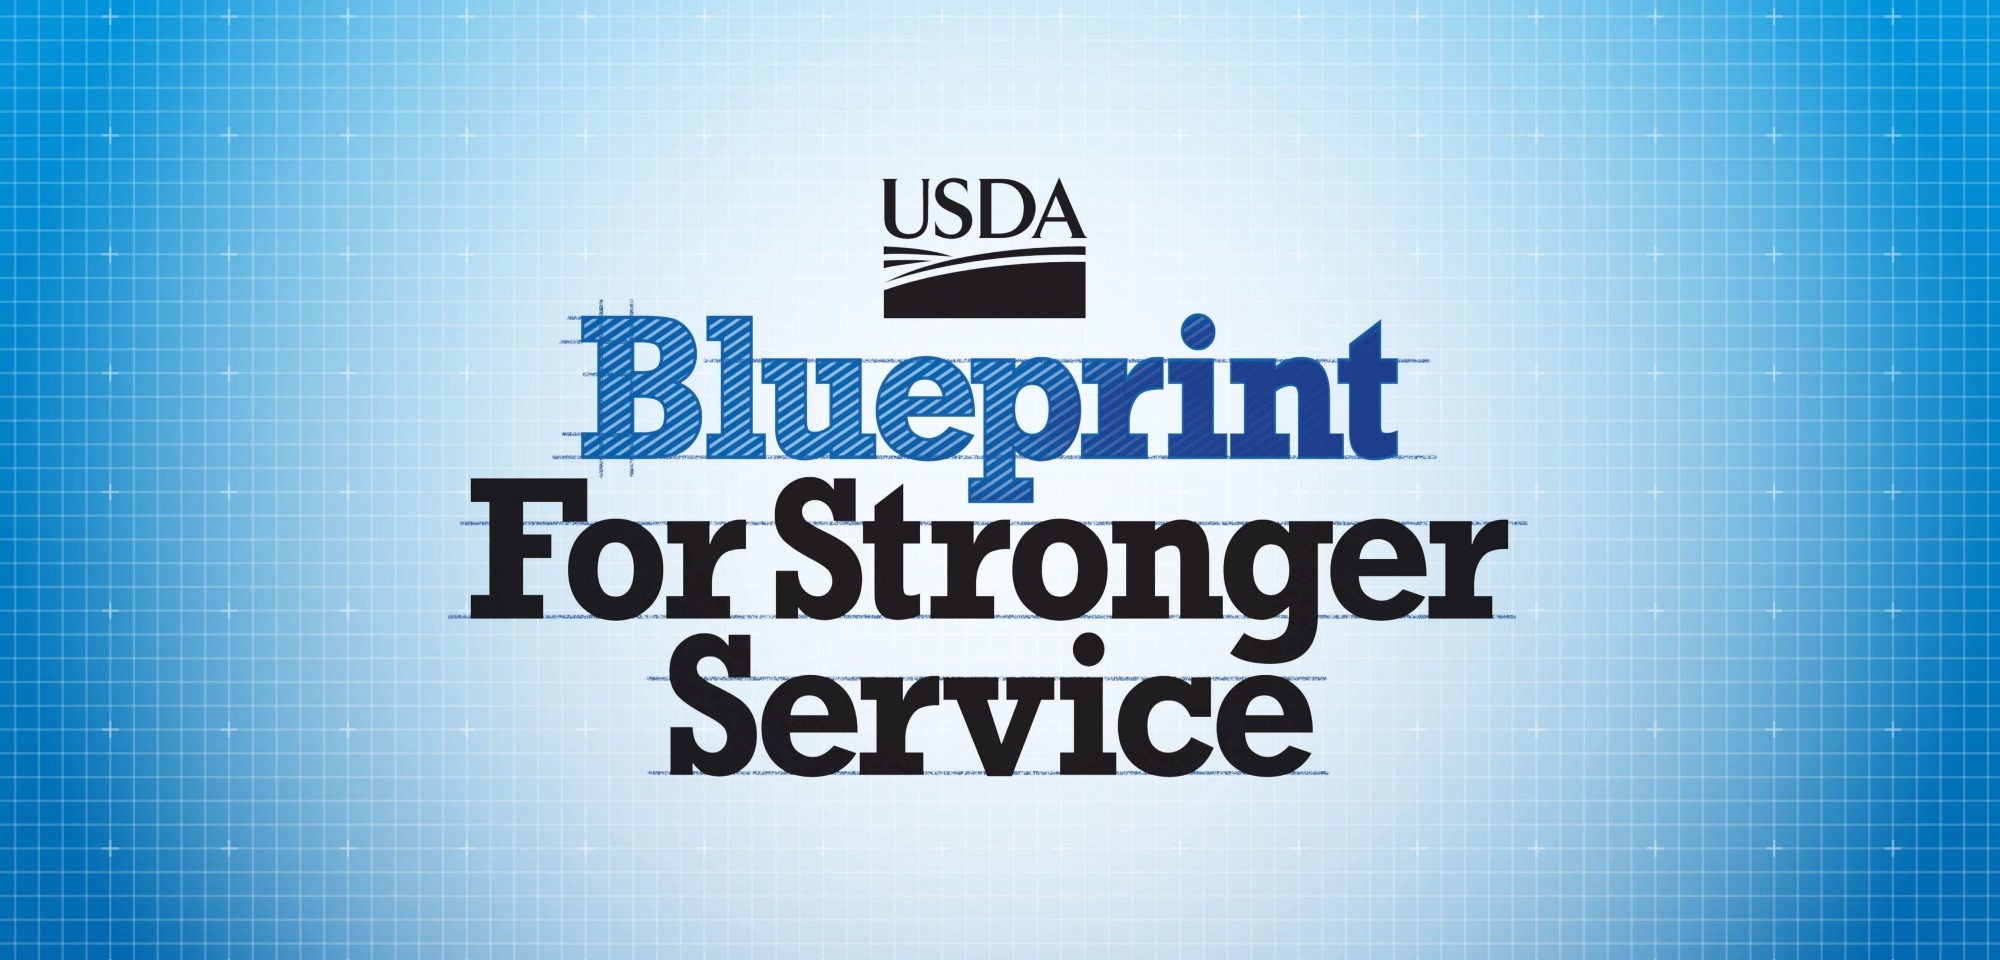 Making usda work better for you usda results medium malvernweather Image collections